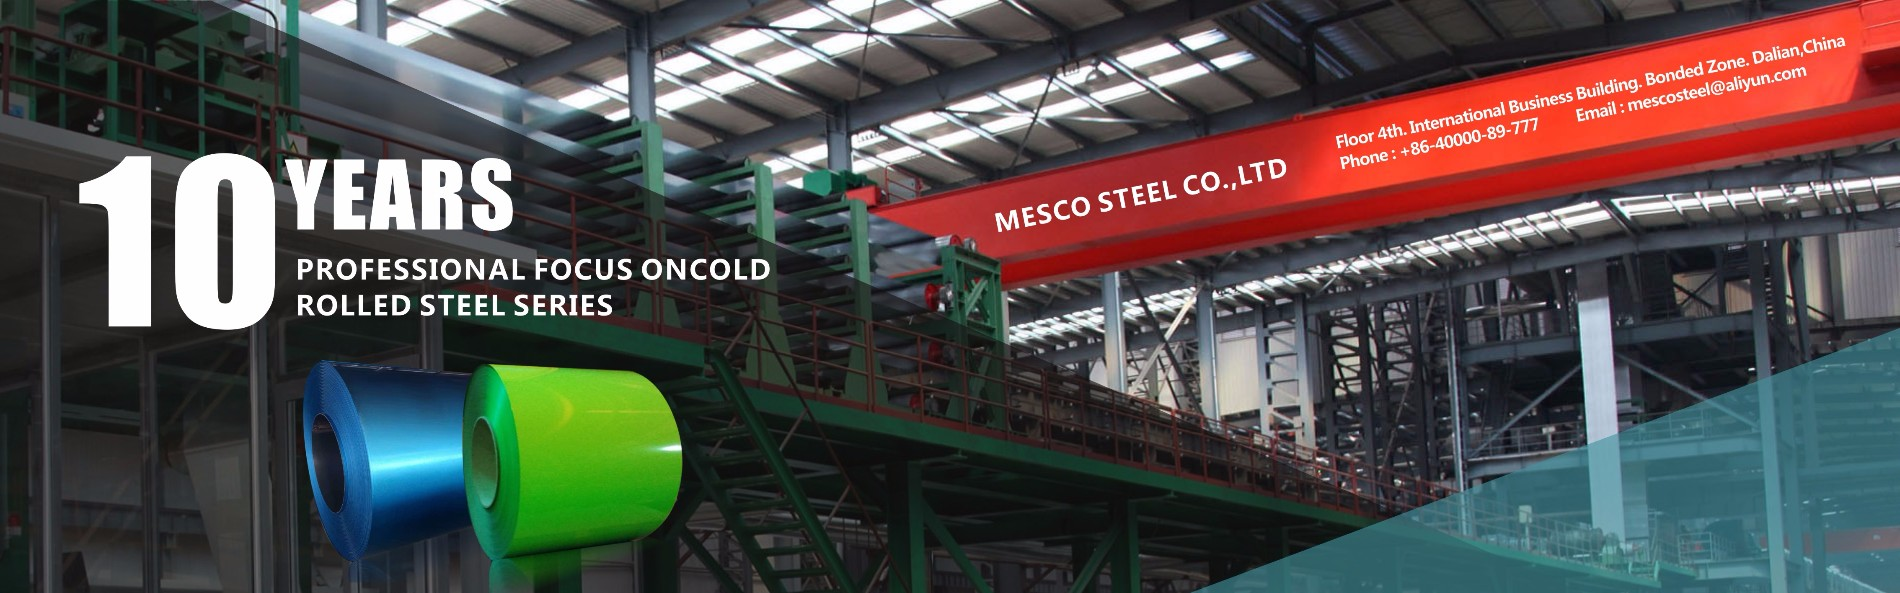 10 Years, Professional focus on cold rolled steel series